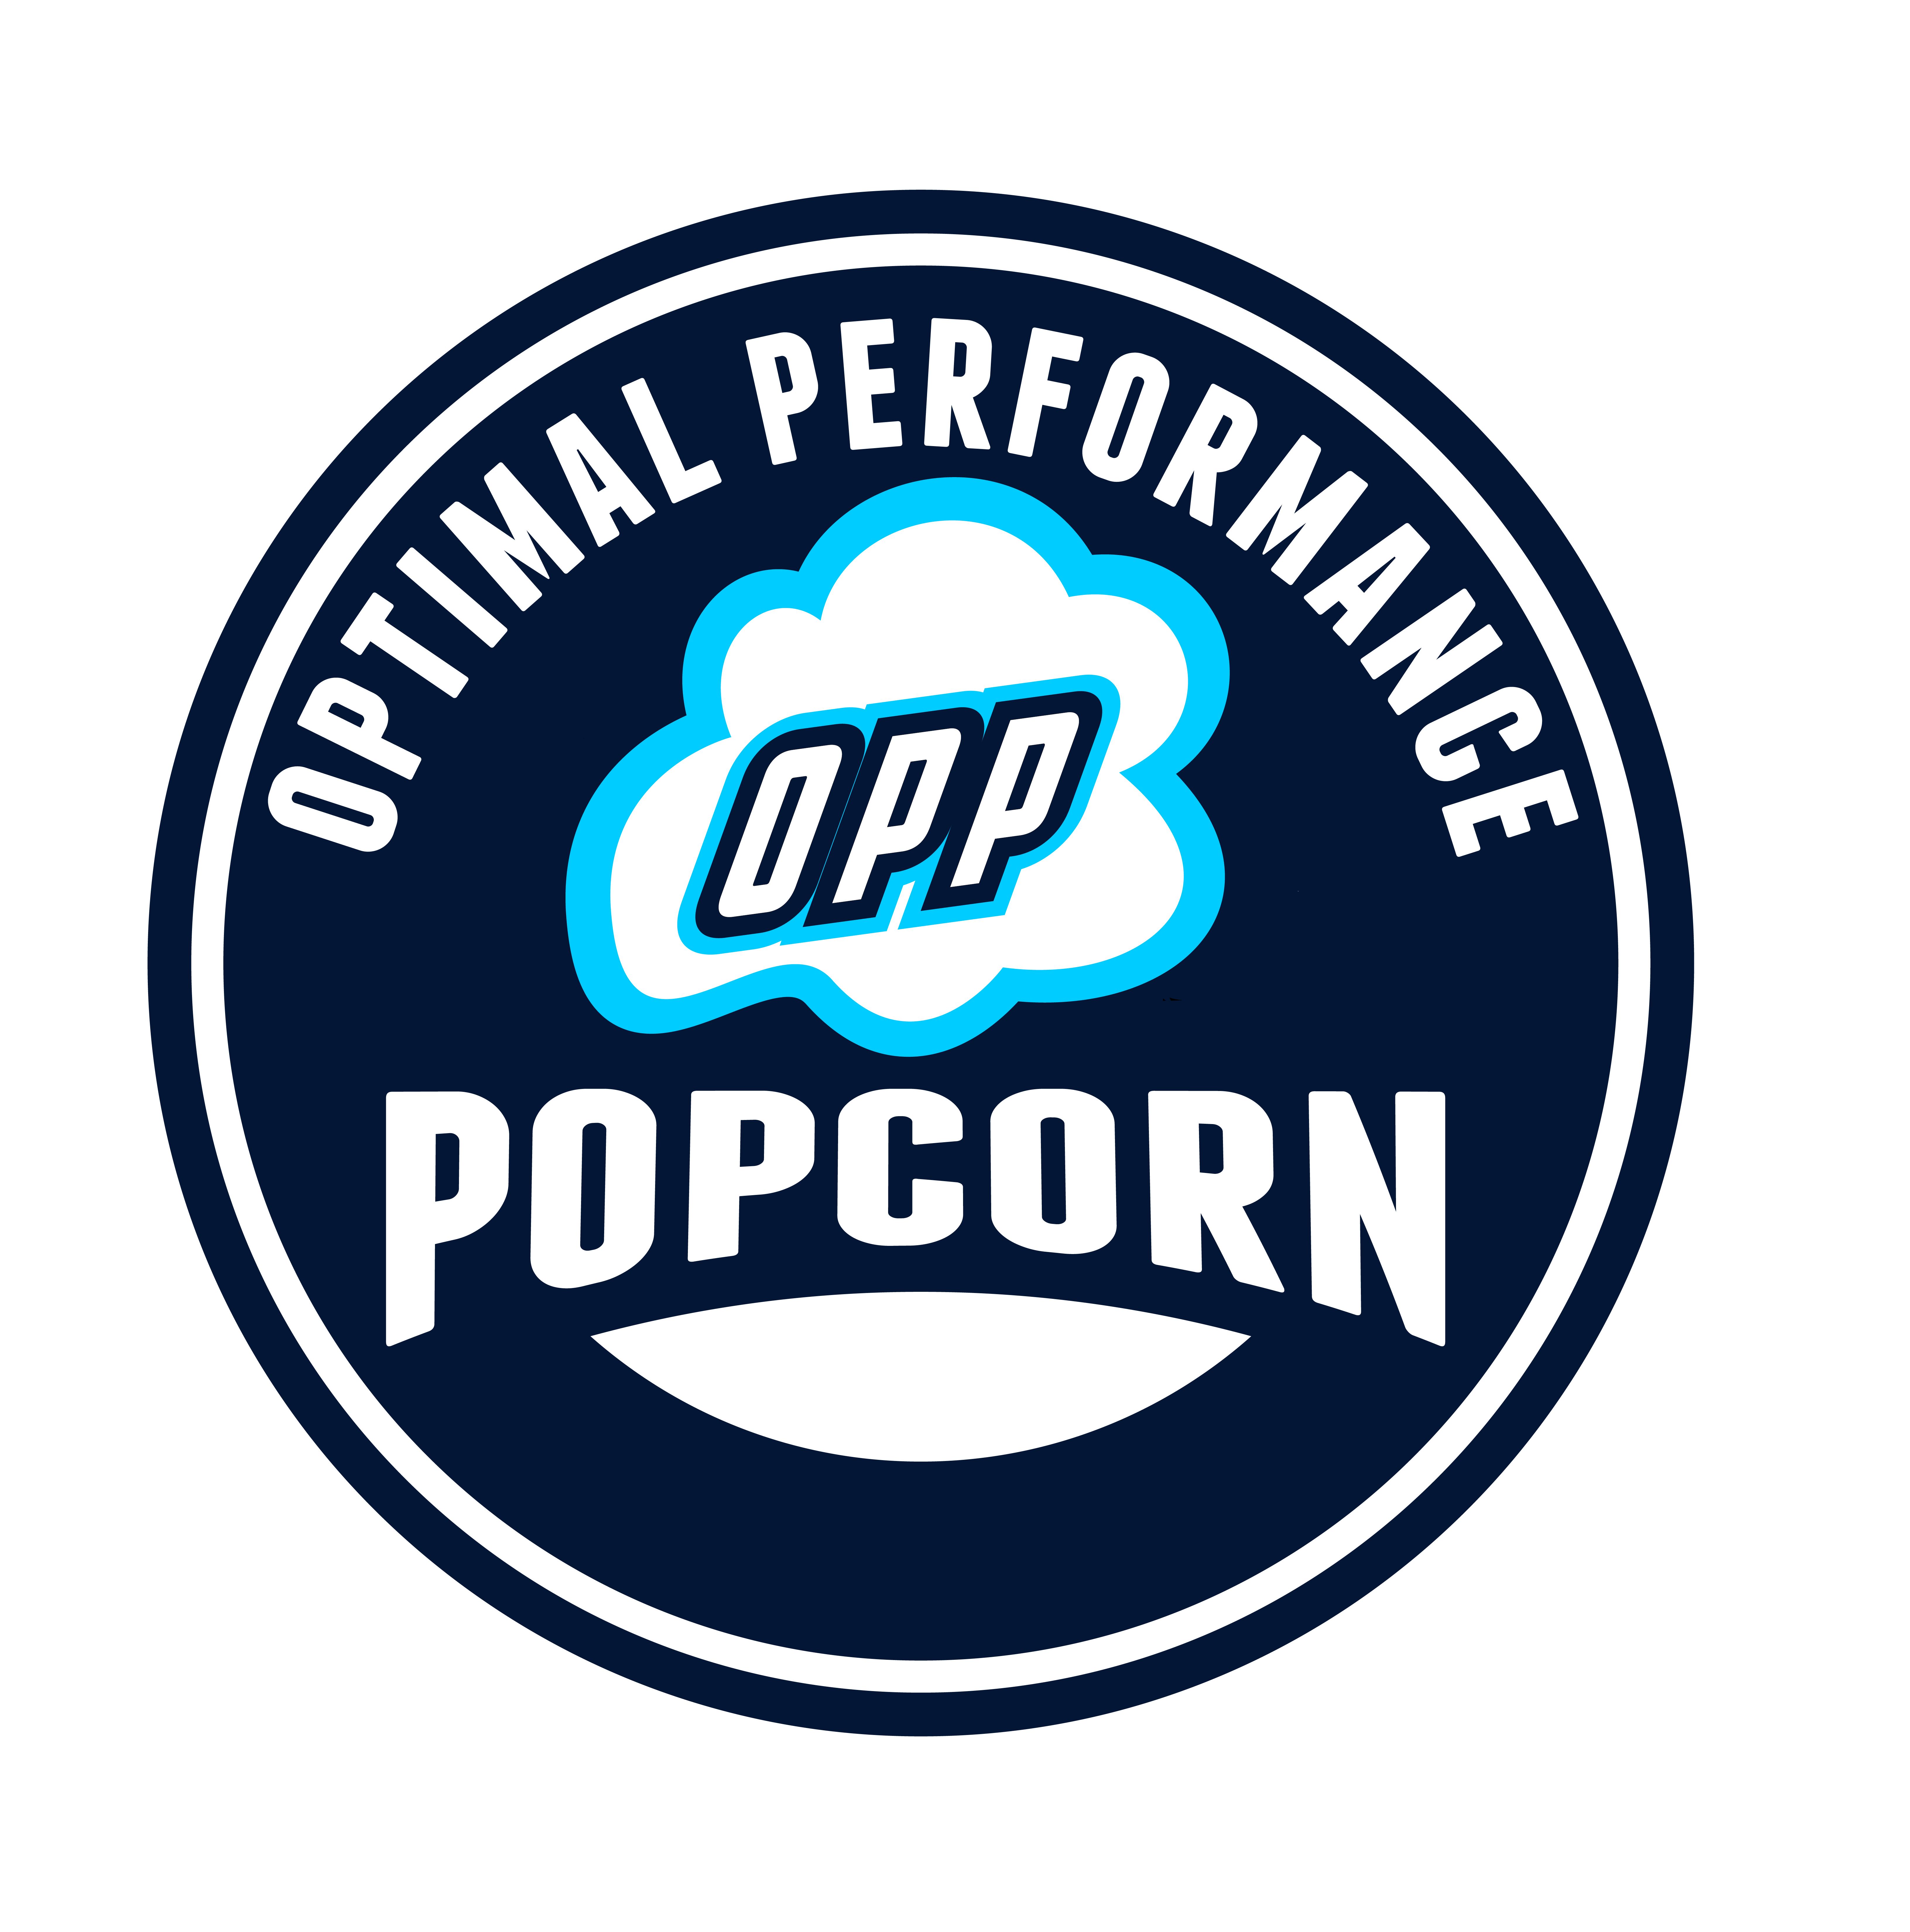 Logo-Design-Services-Example-By-Stable-Gray-For-Rexius-Nutritions-Private-Label-Workout-Popcorn-Called-Optimal Performance Popcorn